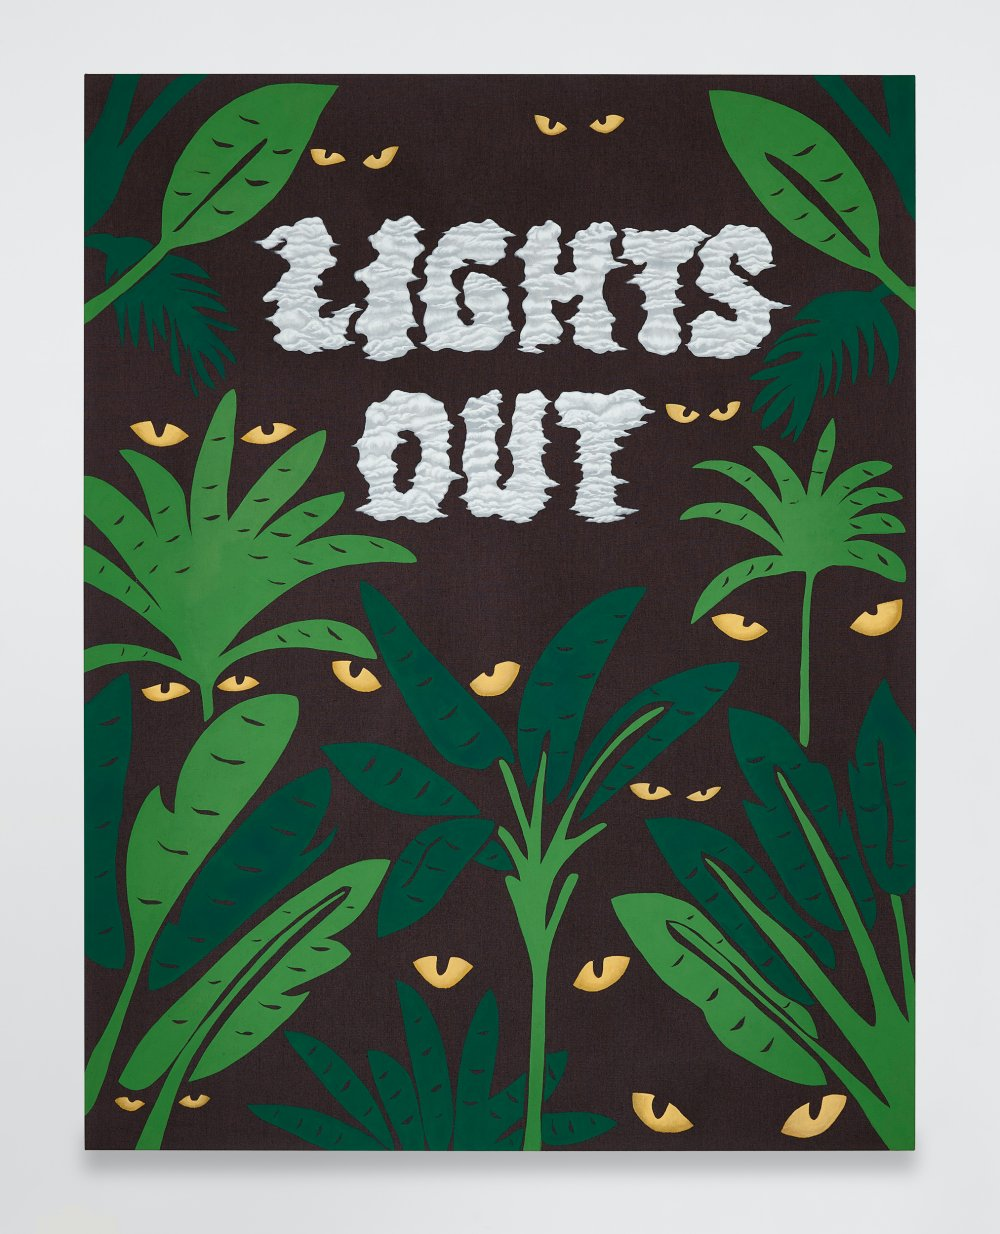 Untitled (Lights Out)